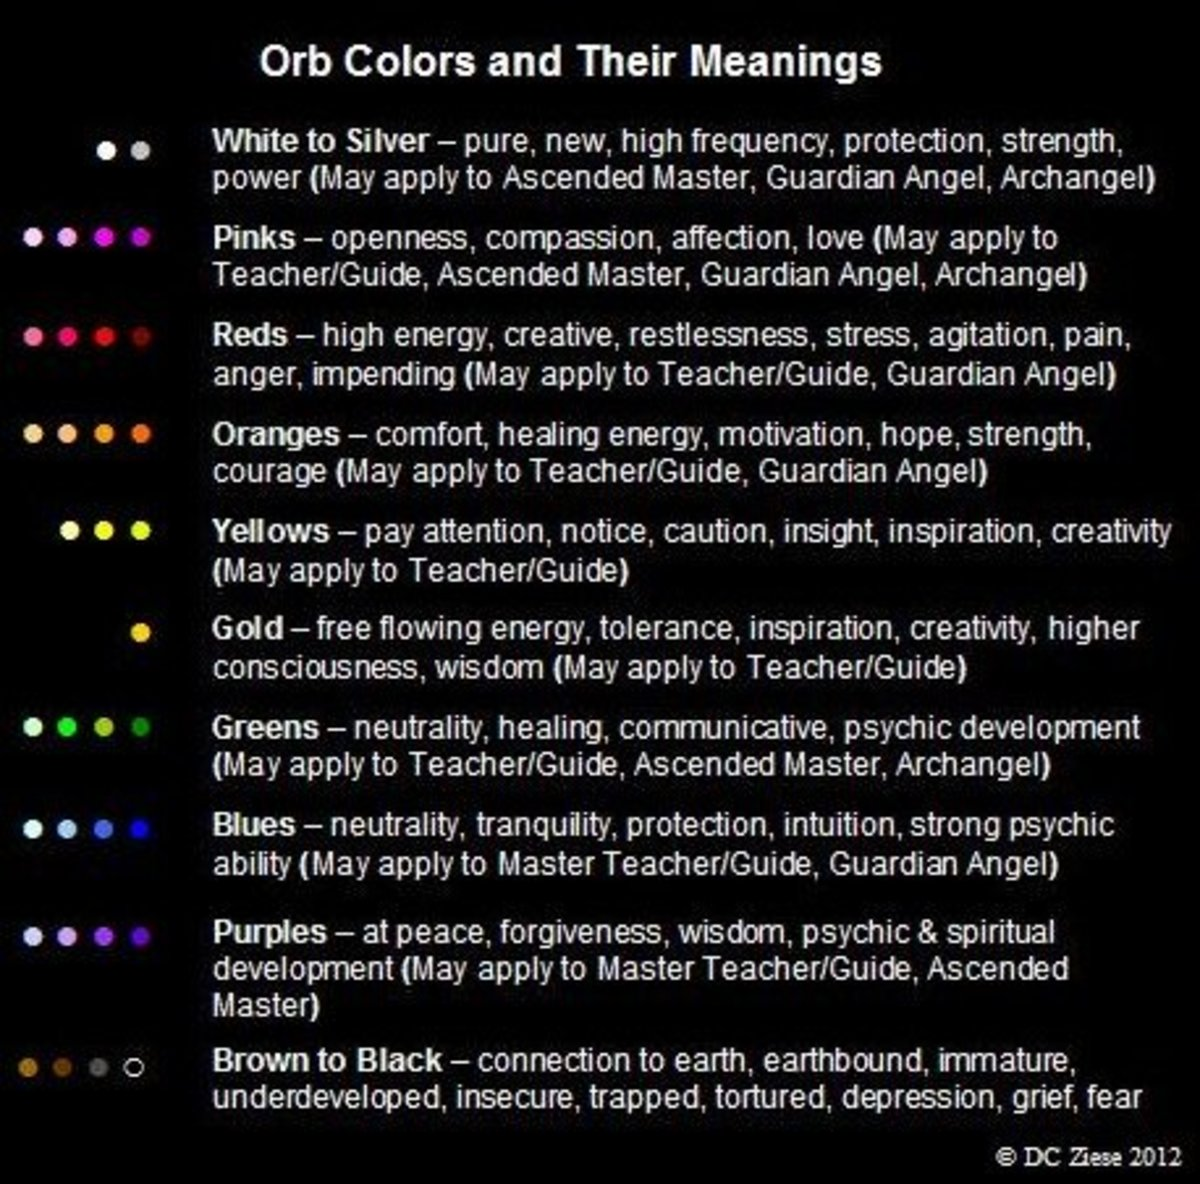 Colors And Their Meanings Awesome With Orb Colors and Their Meanings Images